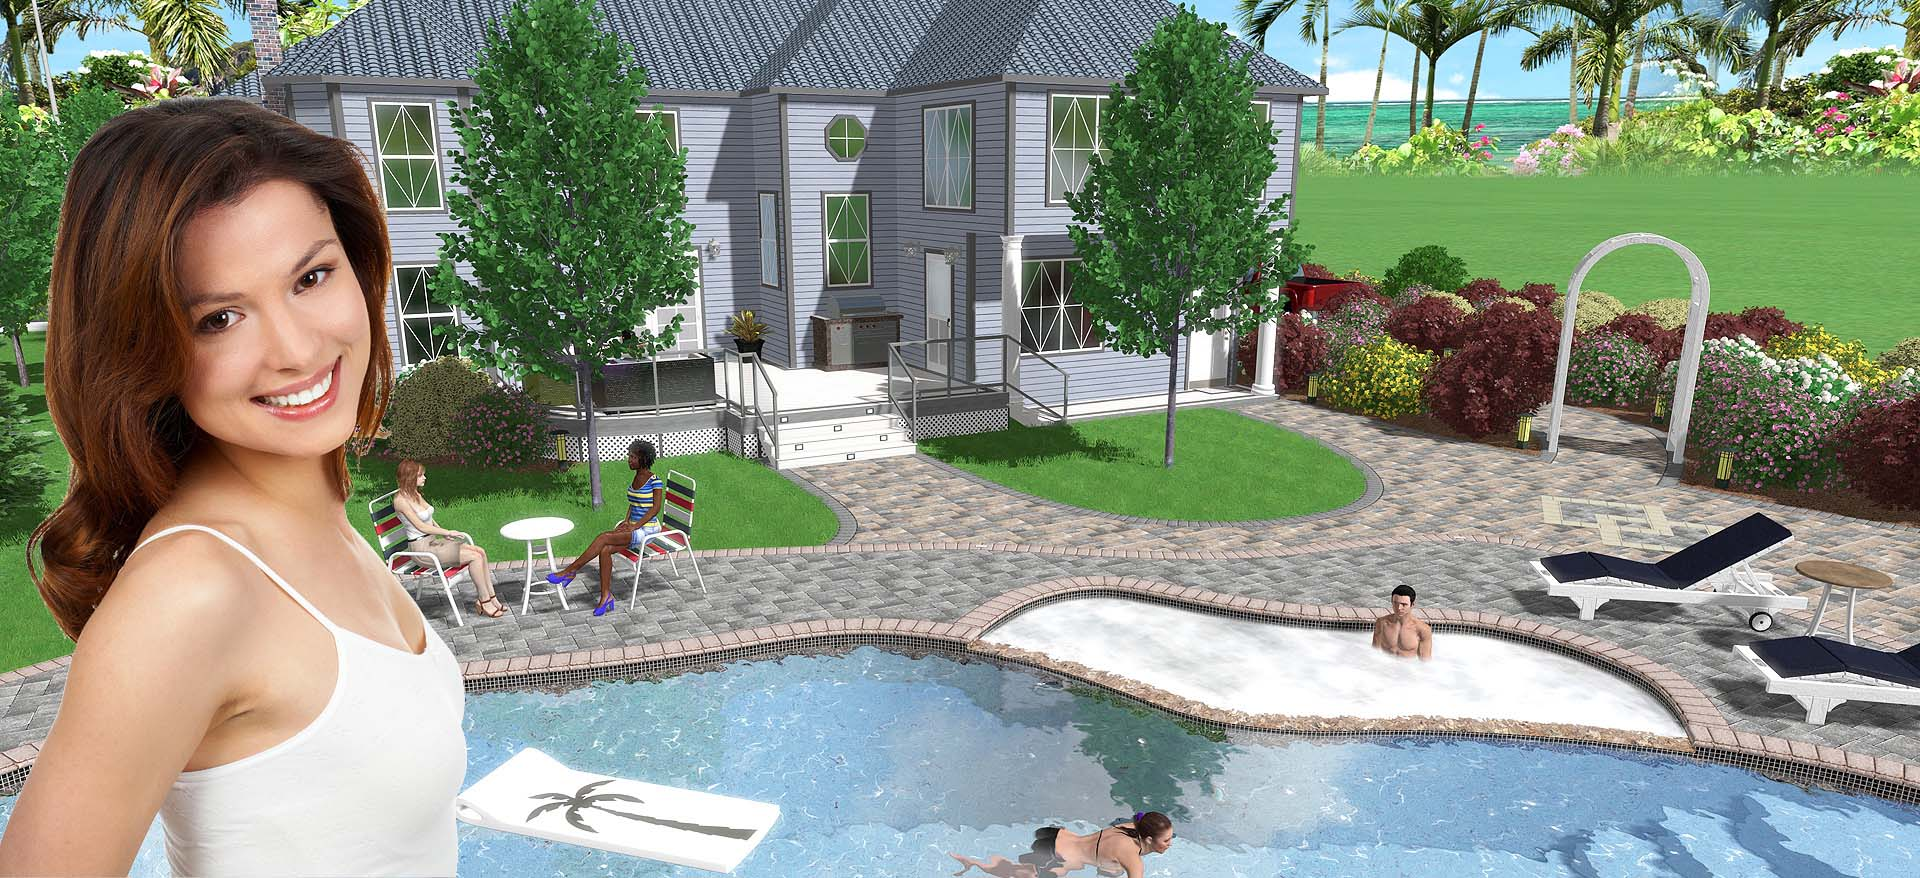 Swimming Pool Design Software Free medium size of pool designabove ground pool deck design software free plus swimming pool Landscape Design Software